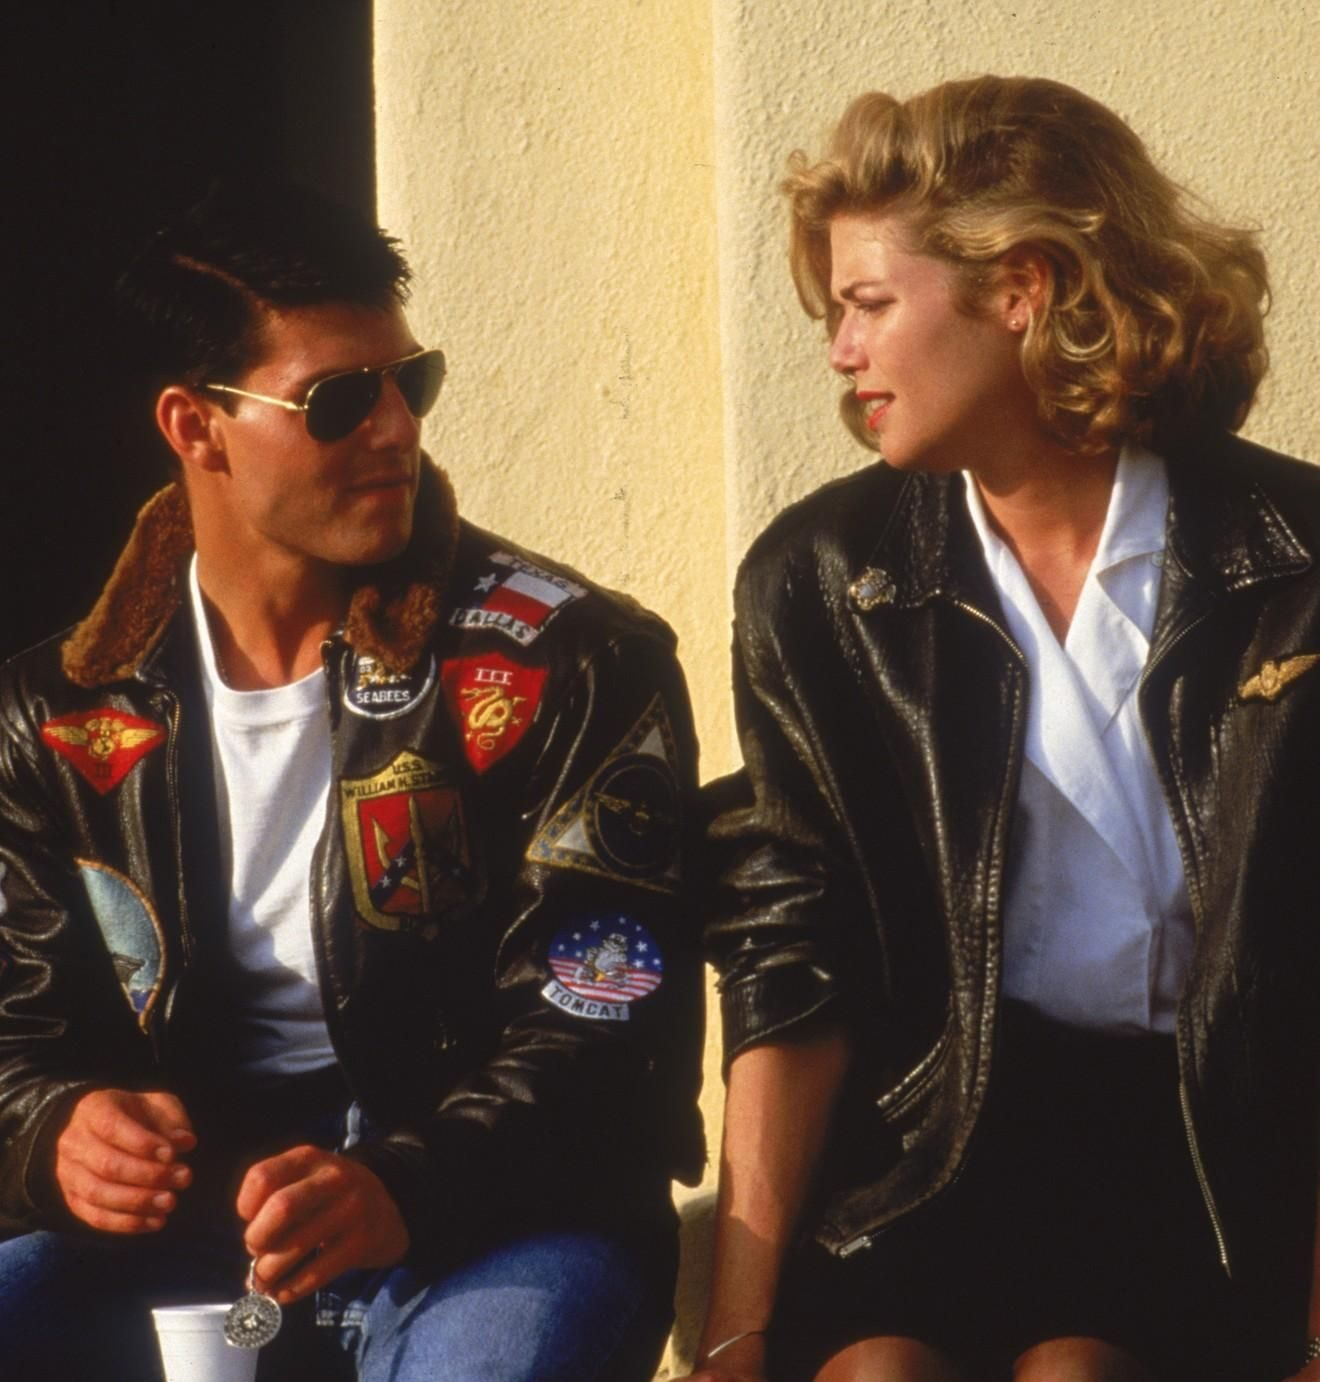 gif 10 e1594996125131 20 Things You May Have Missed In Top Gun